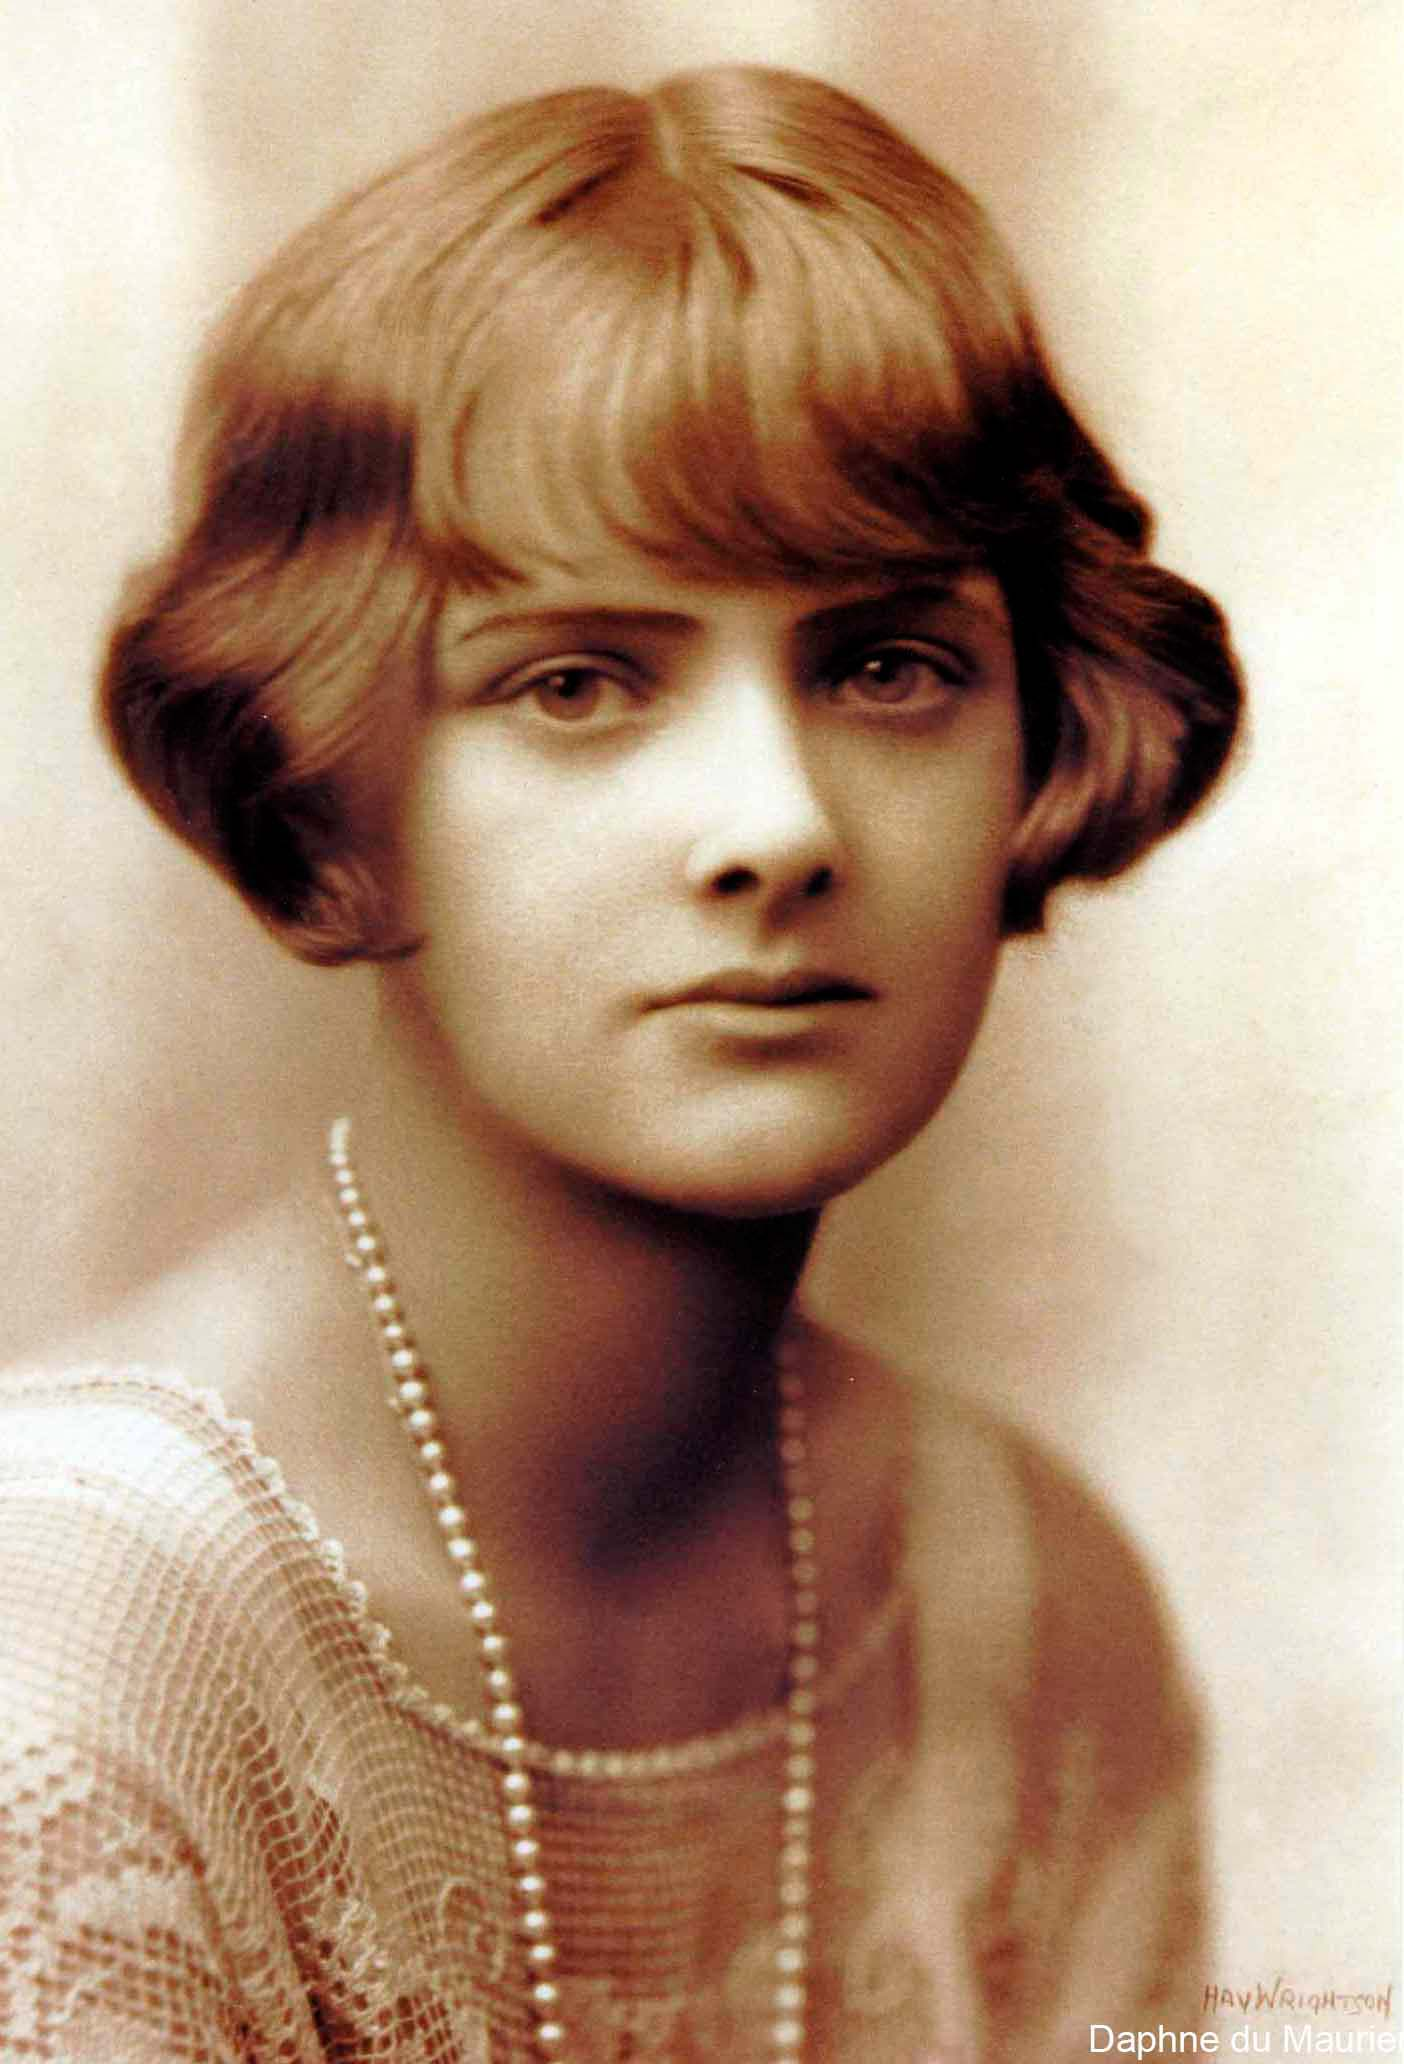 an analysis of rebecca a novel by daphne du maurier Rebecca rebecca by daphne du maurier has become a widely read novel it was also made into a well known movie by alfred hitchcock, winning an oscar for best picture.